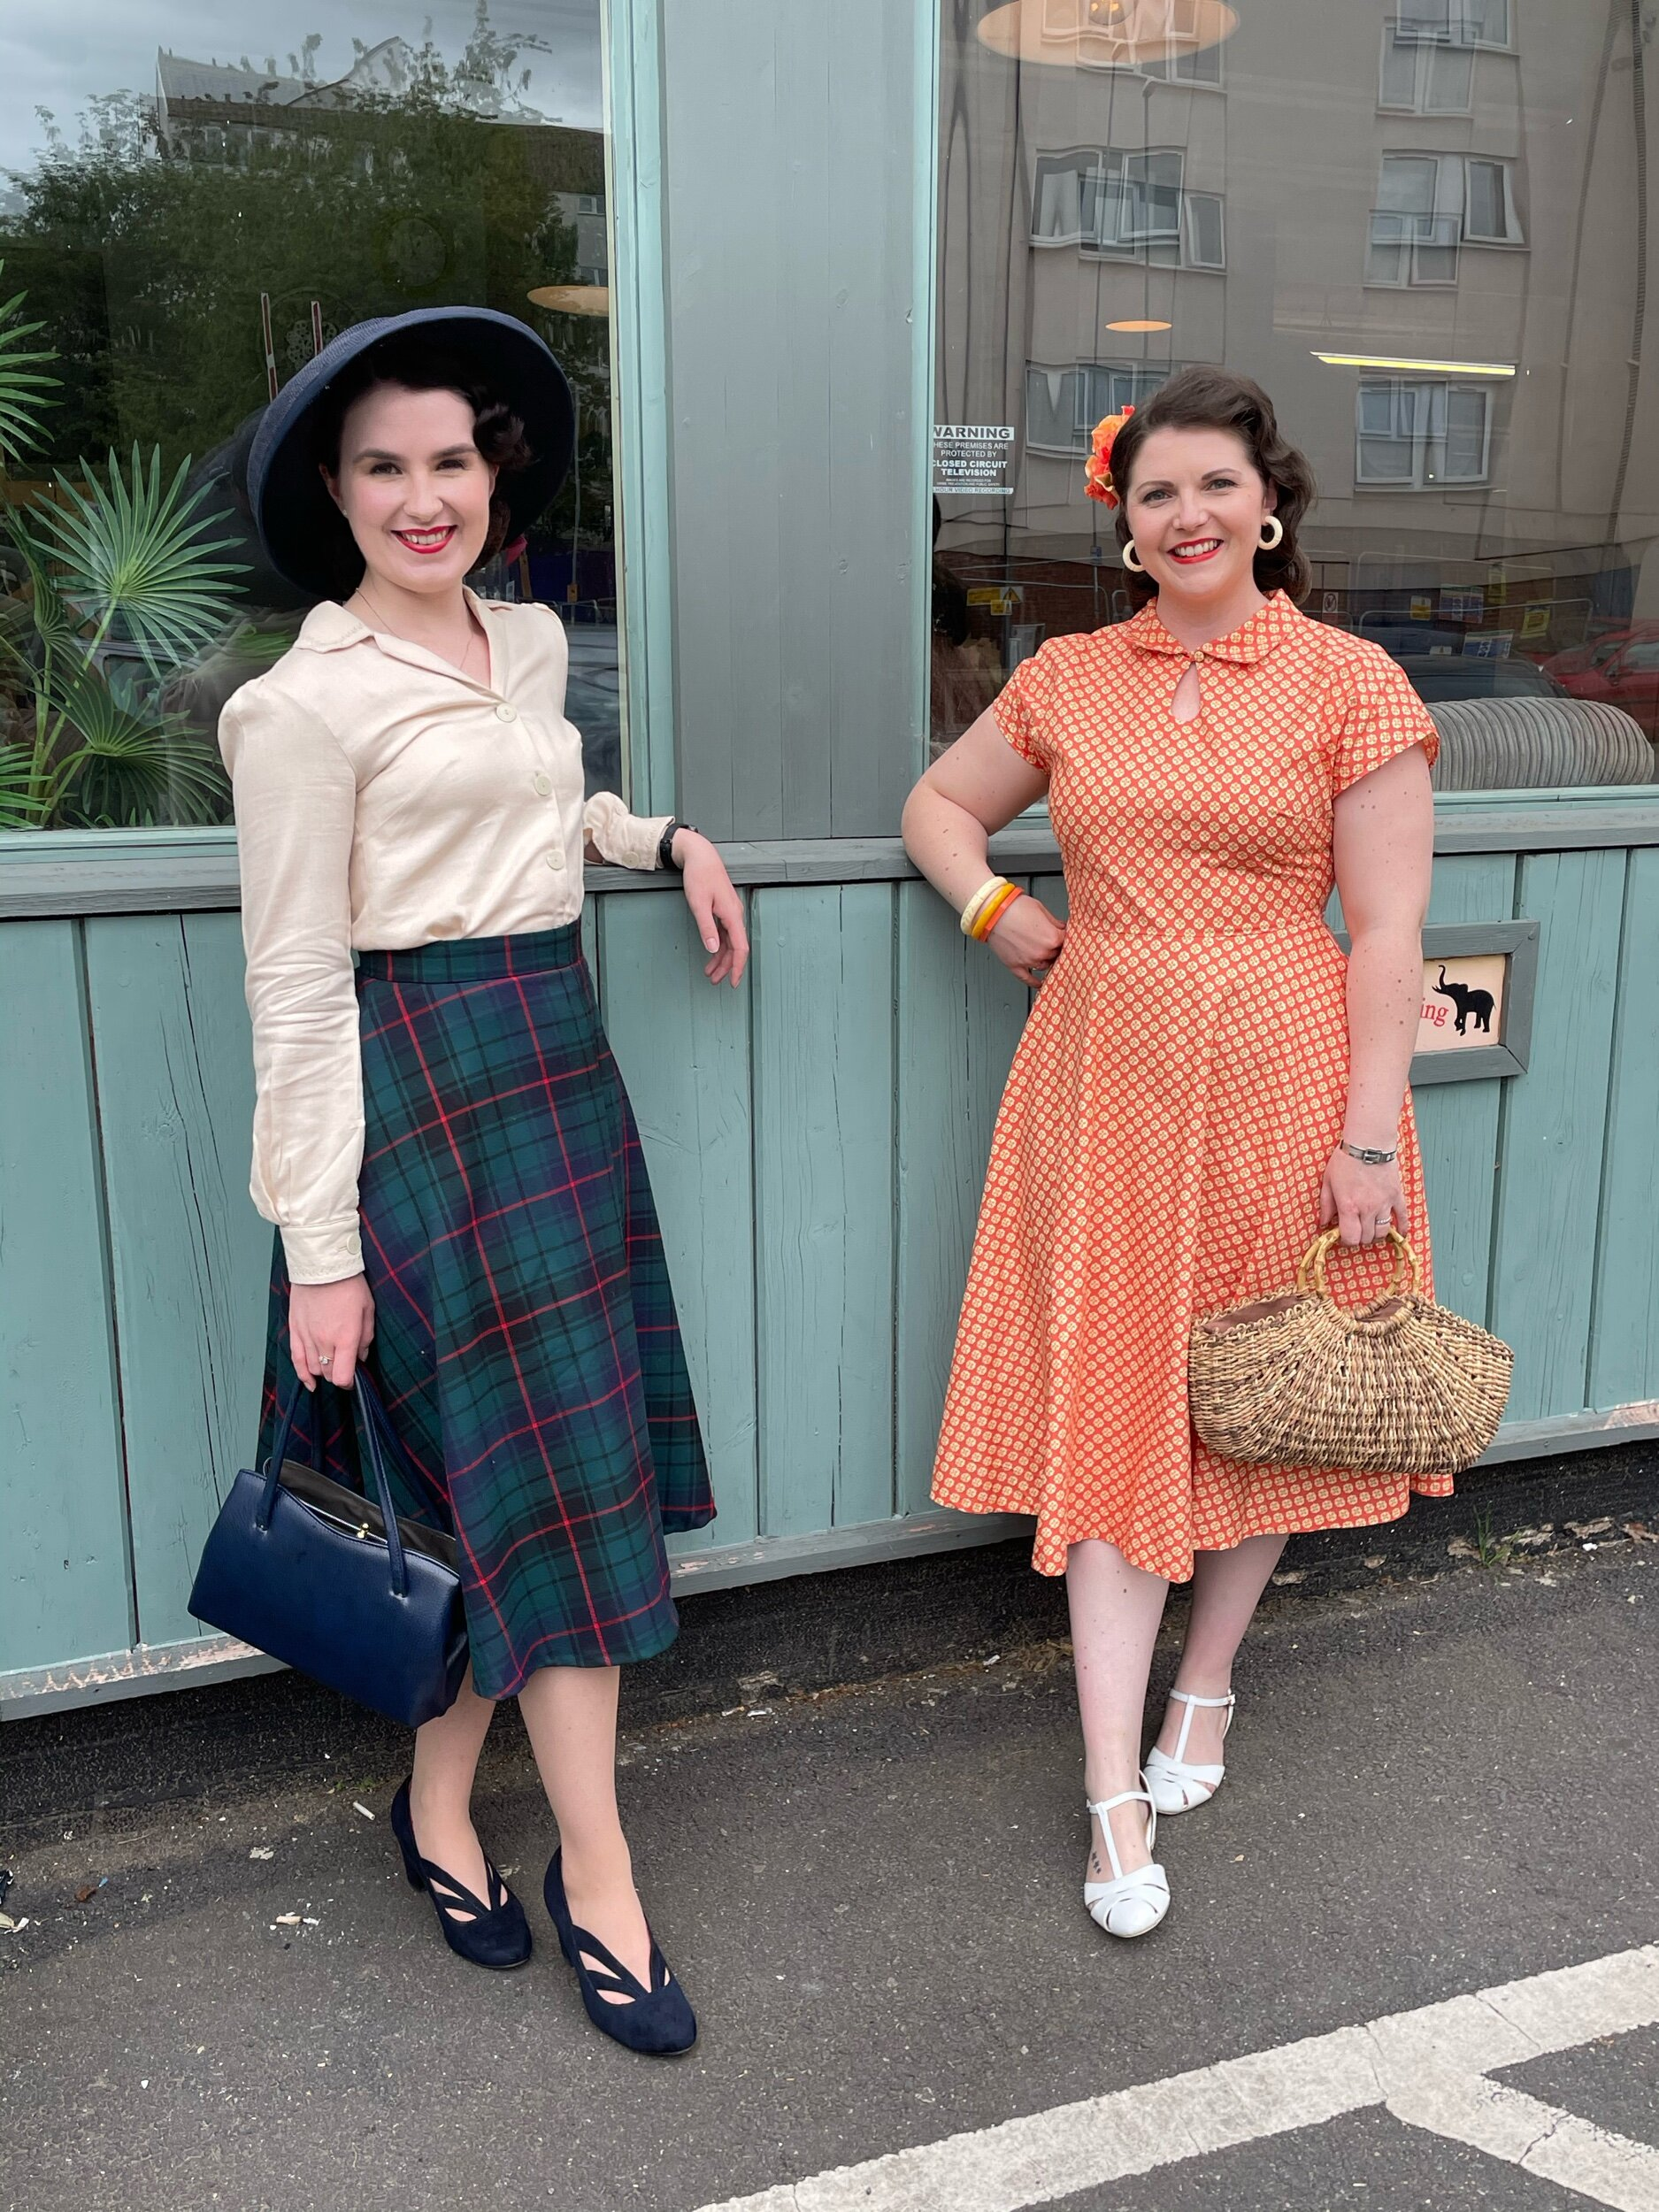 We had the pleasure of meeting Ellen at The Vintage Retreat in Northampton last month, she wears her bespoke family name tartan 'Rosie' skirt and 'Lillias' blouse.